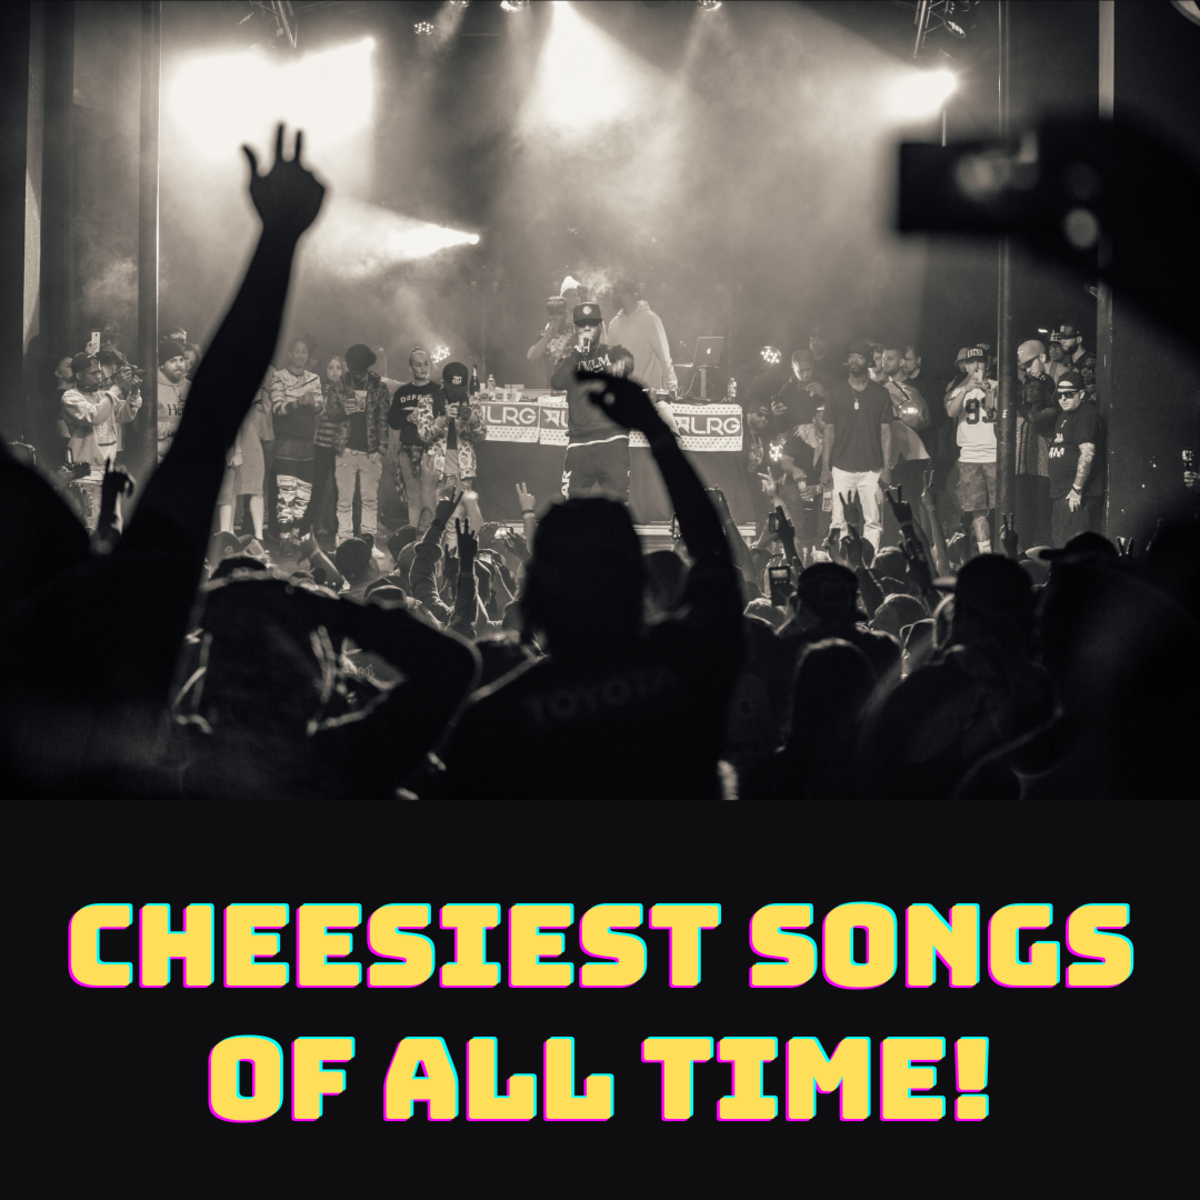 The 10 Cheesiest Songs of All Time!